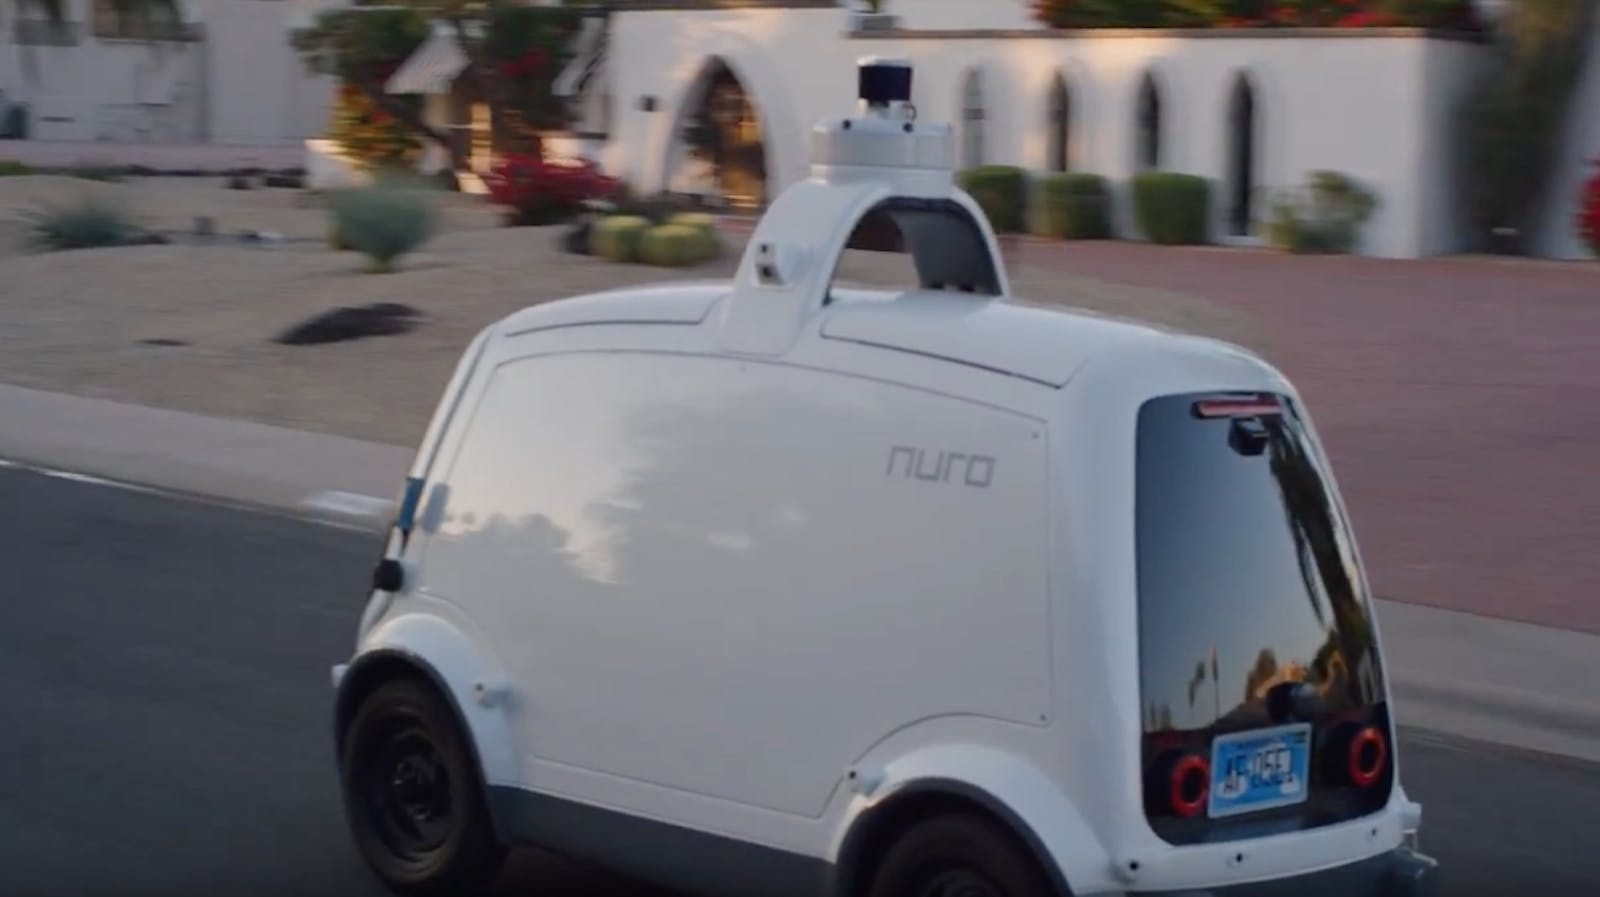 A Nuro self-driving delivery robot prototype in suburban Phoenix. Credit: Nuro